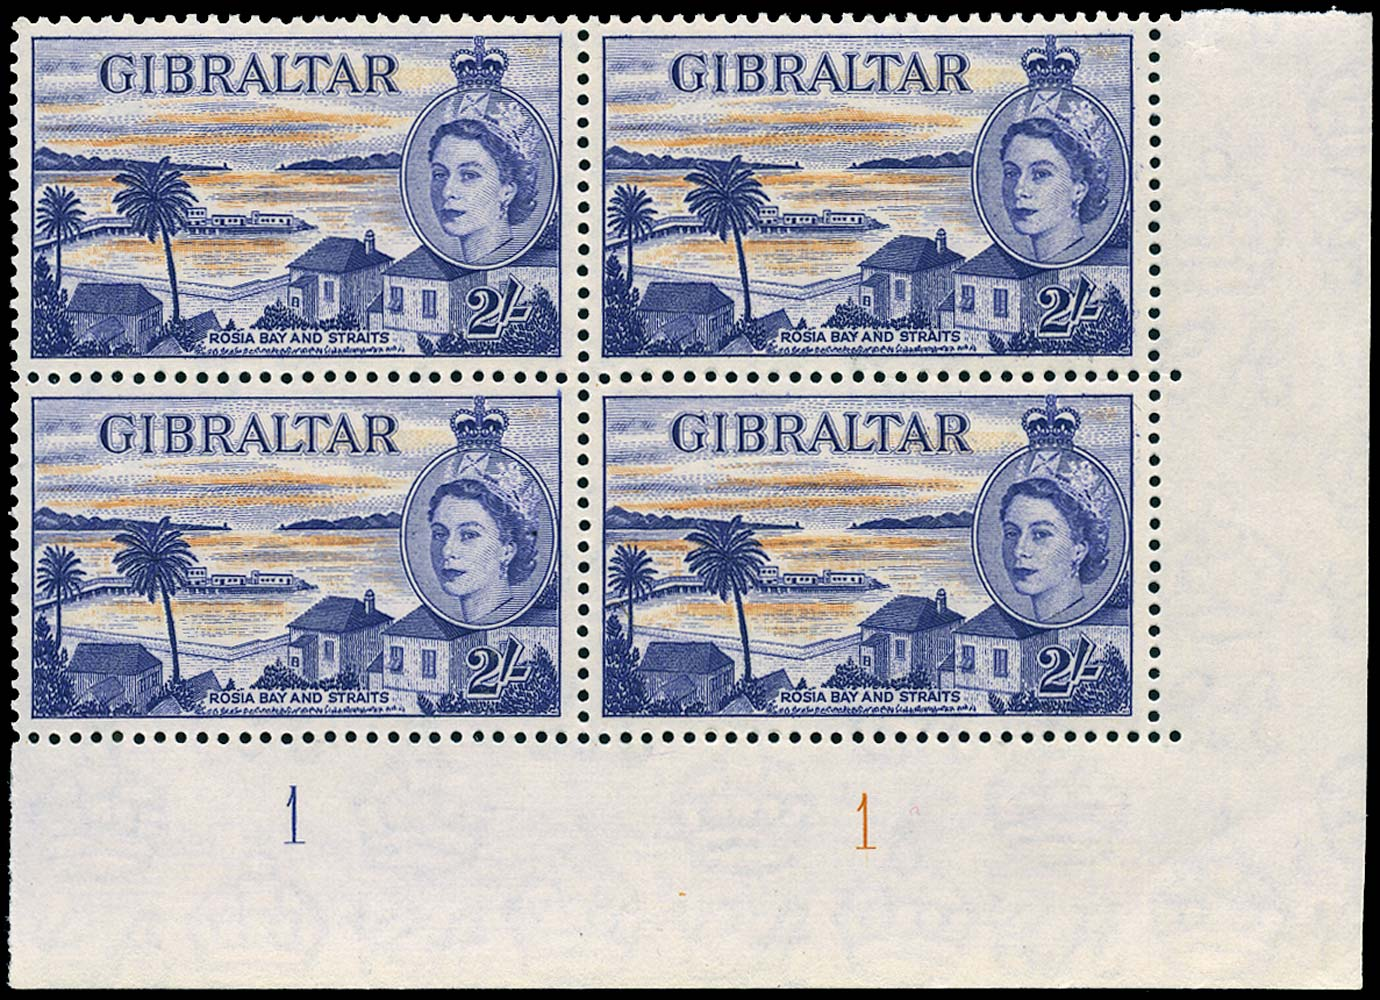 GIBRALTAR 1953  SG155 Mint 2s orange and reddish violet unmounted